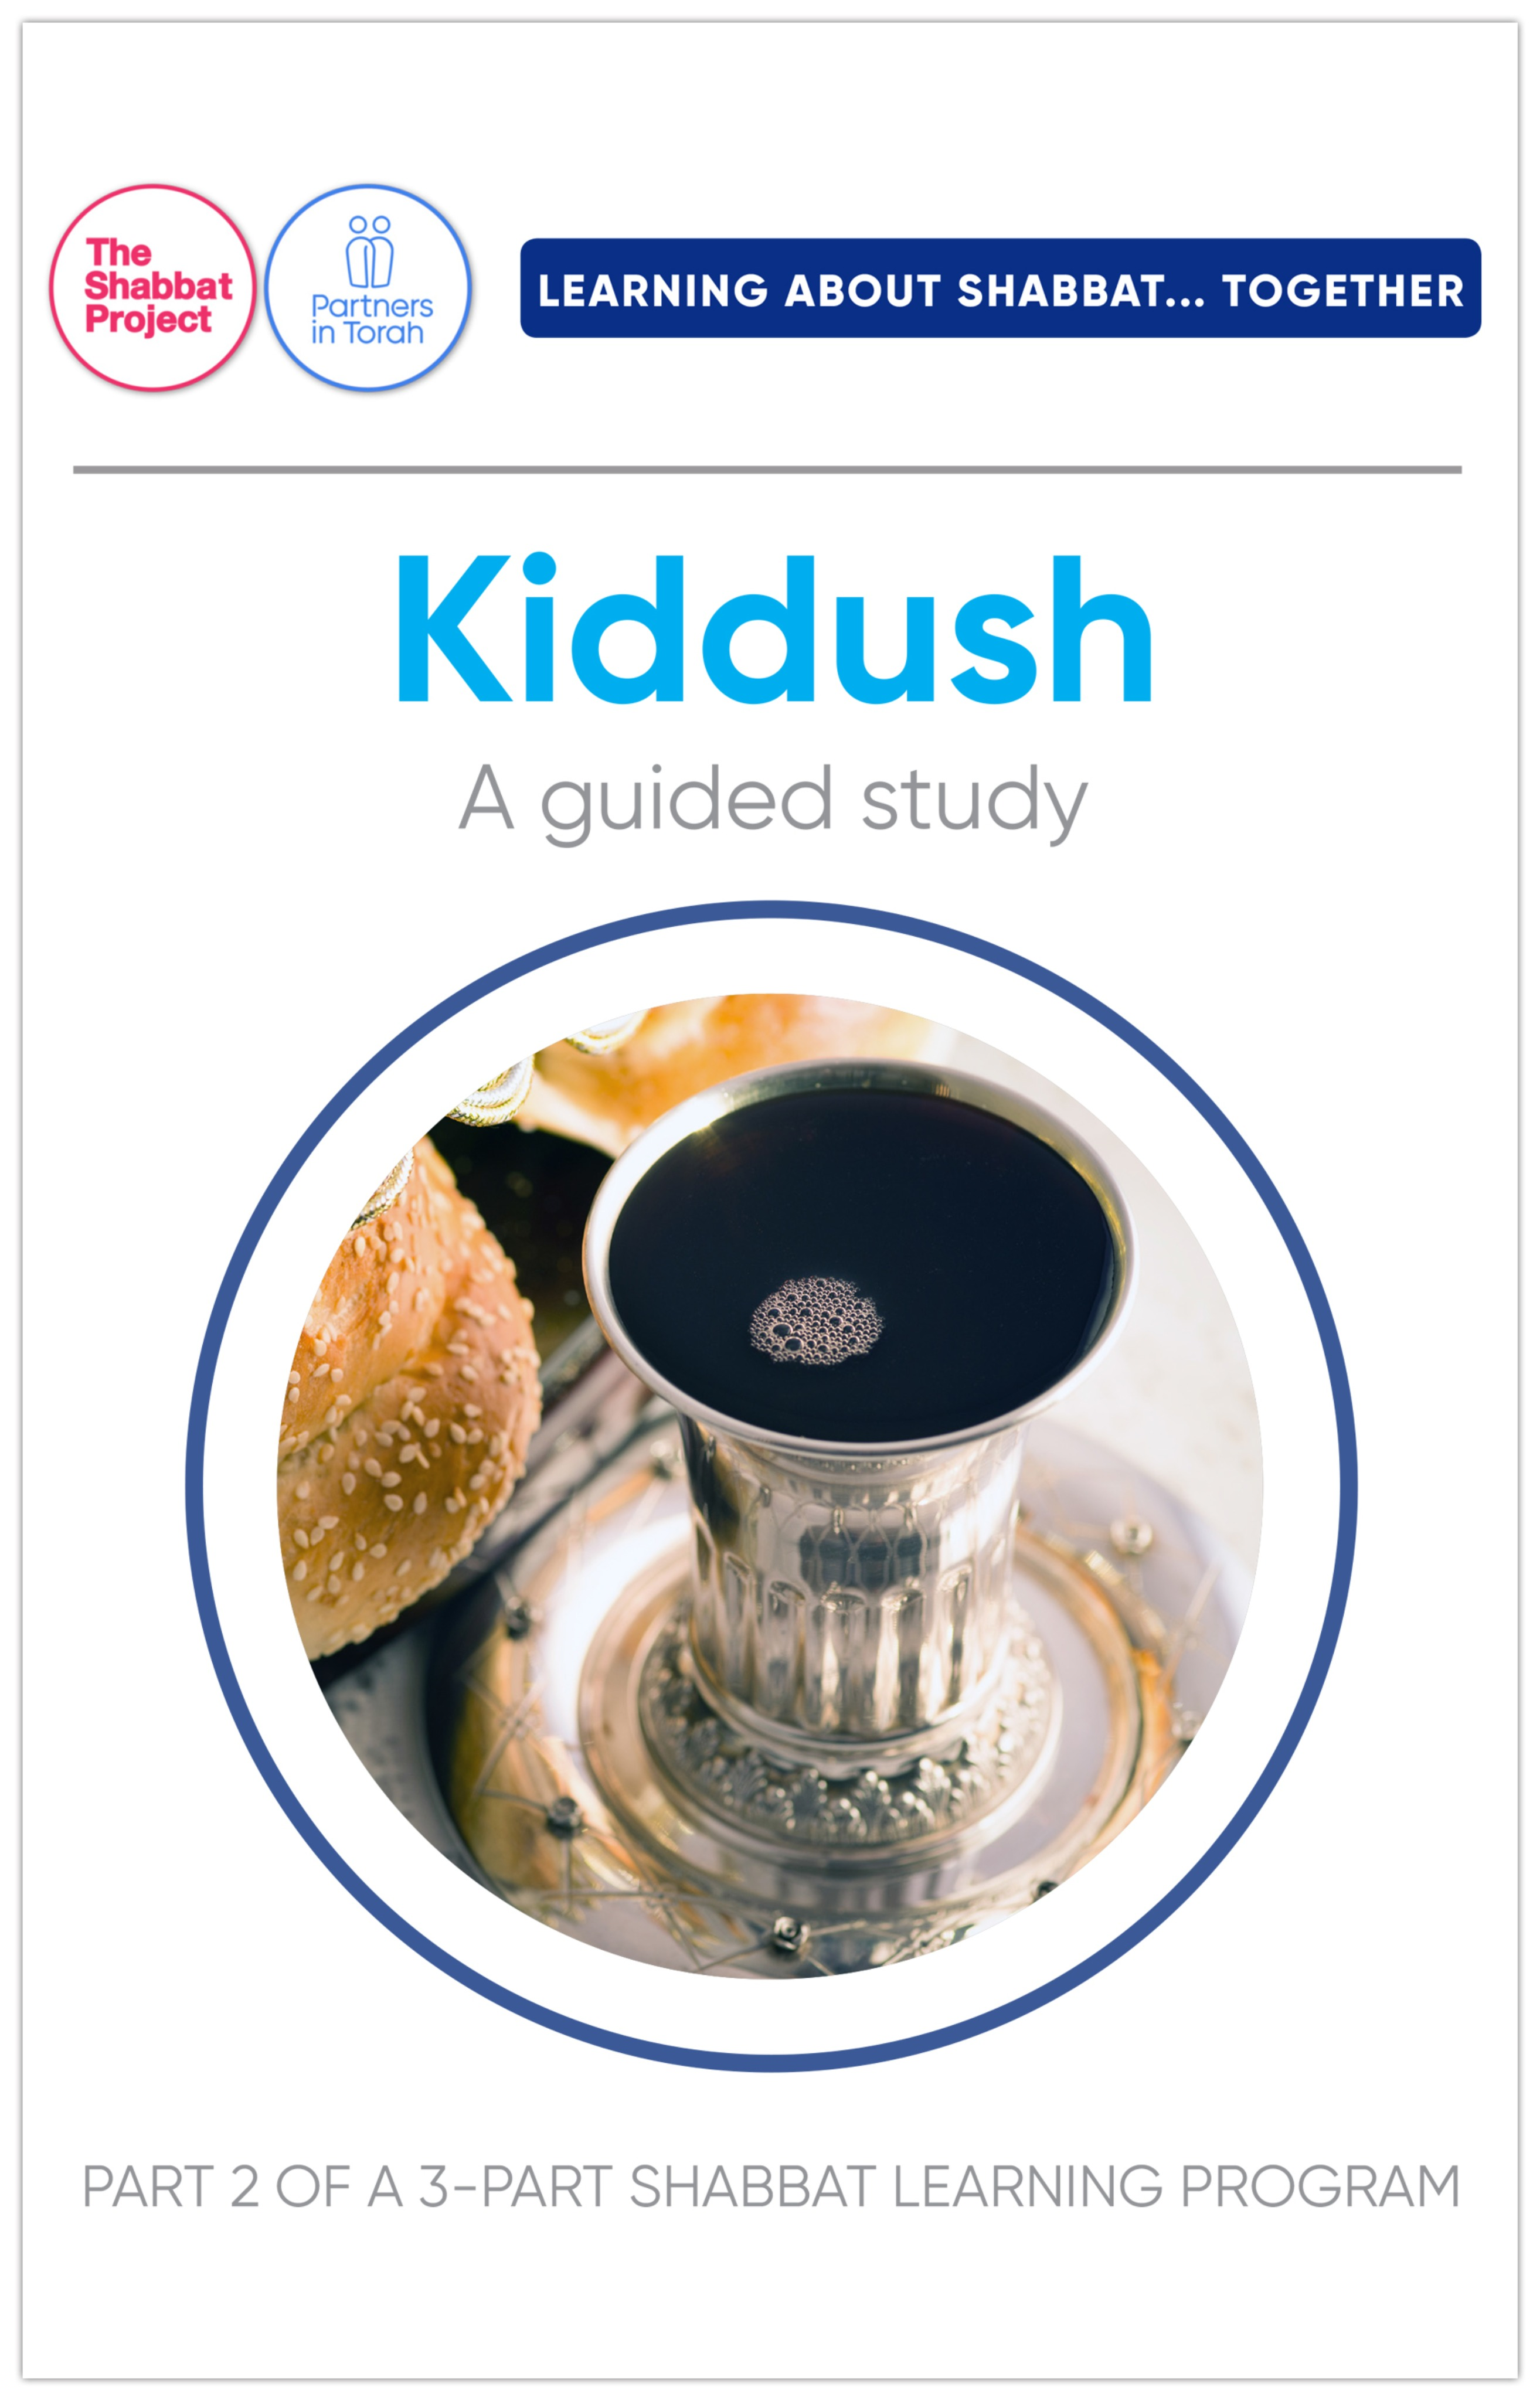 **Learning About Shabbat... Kiddush